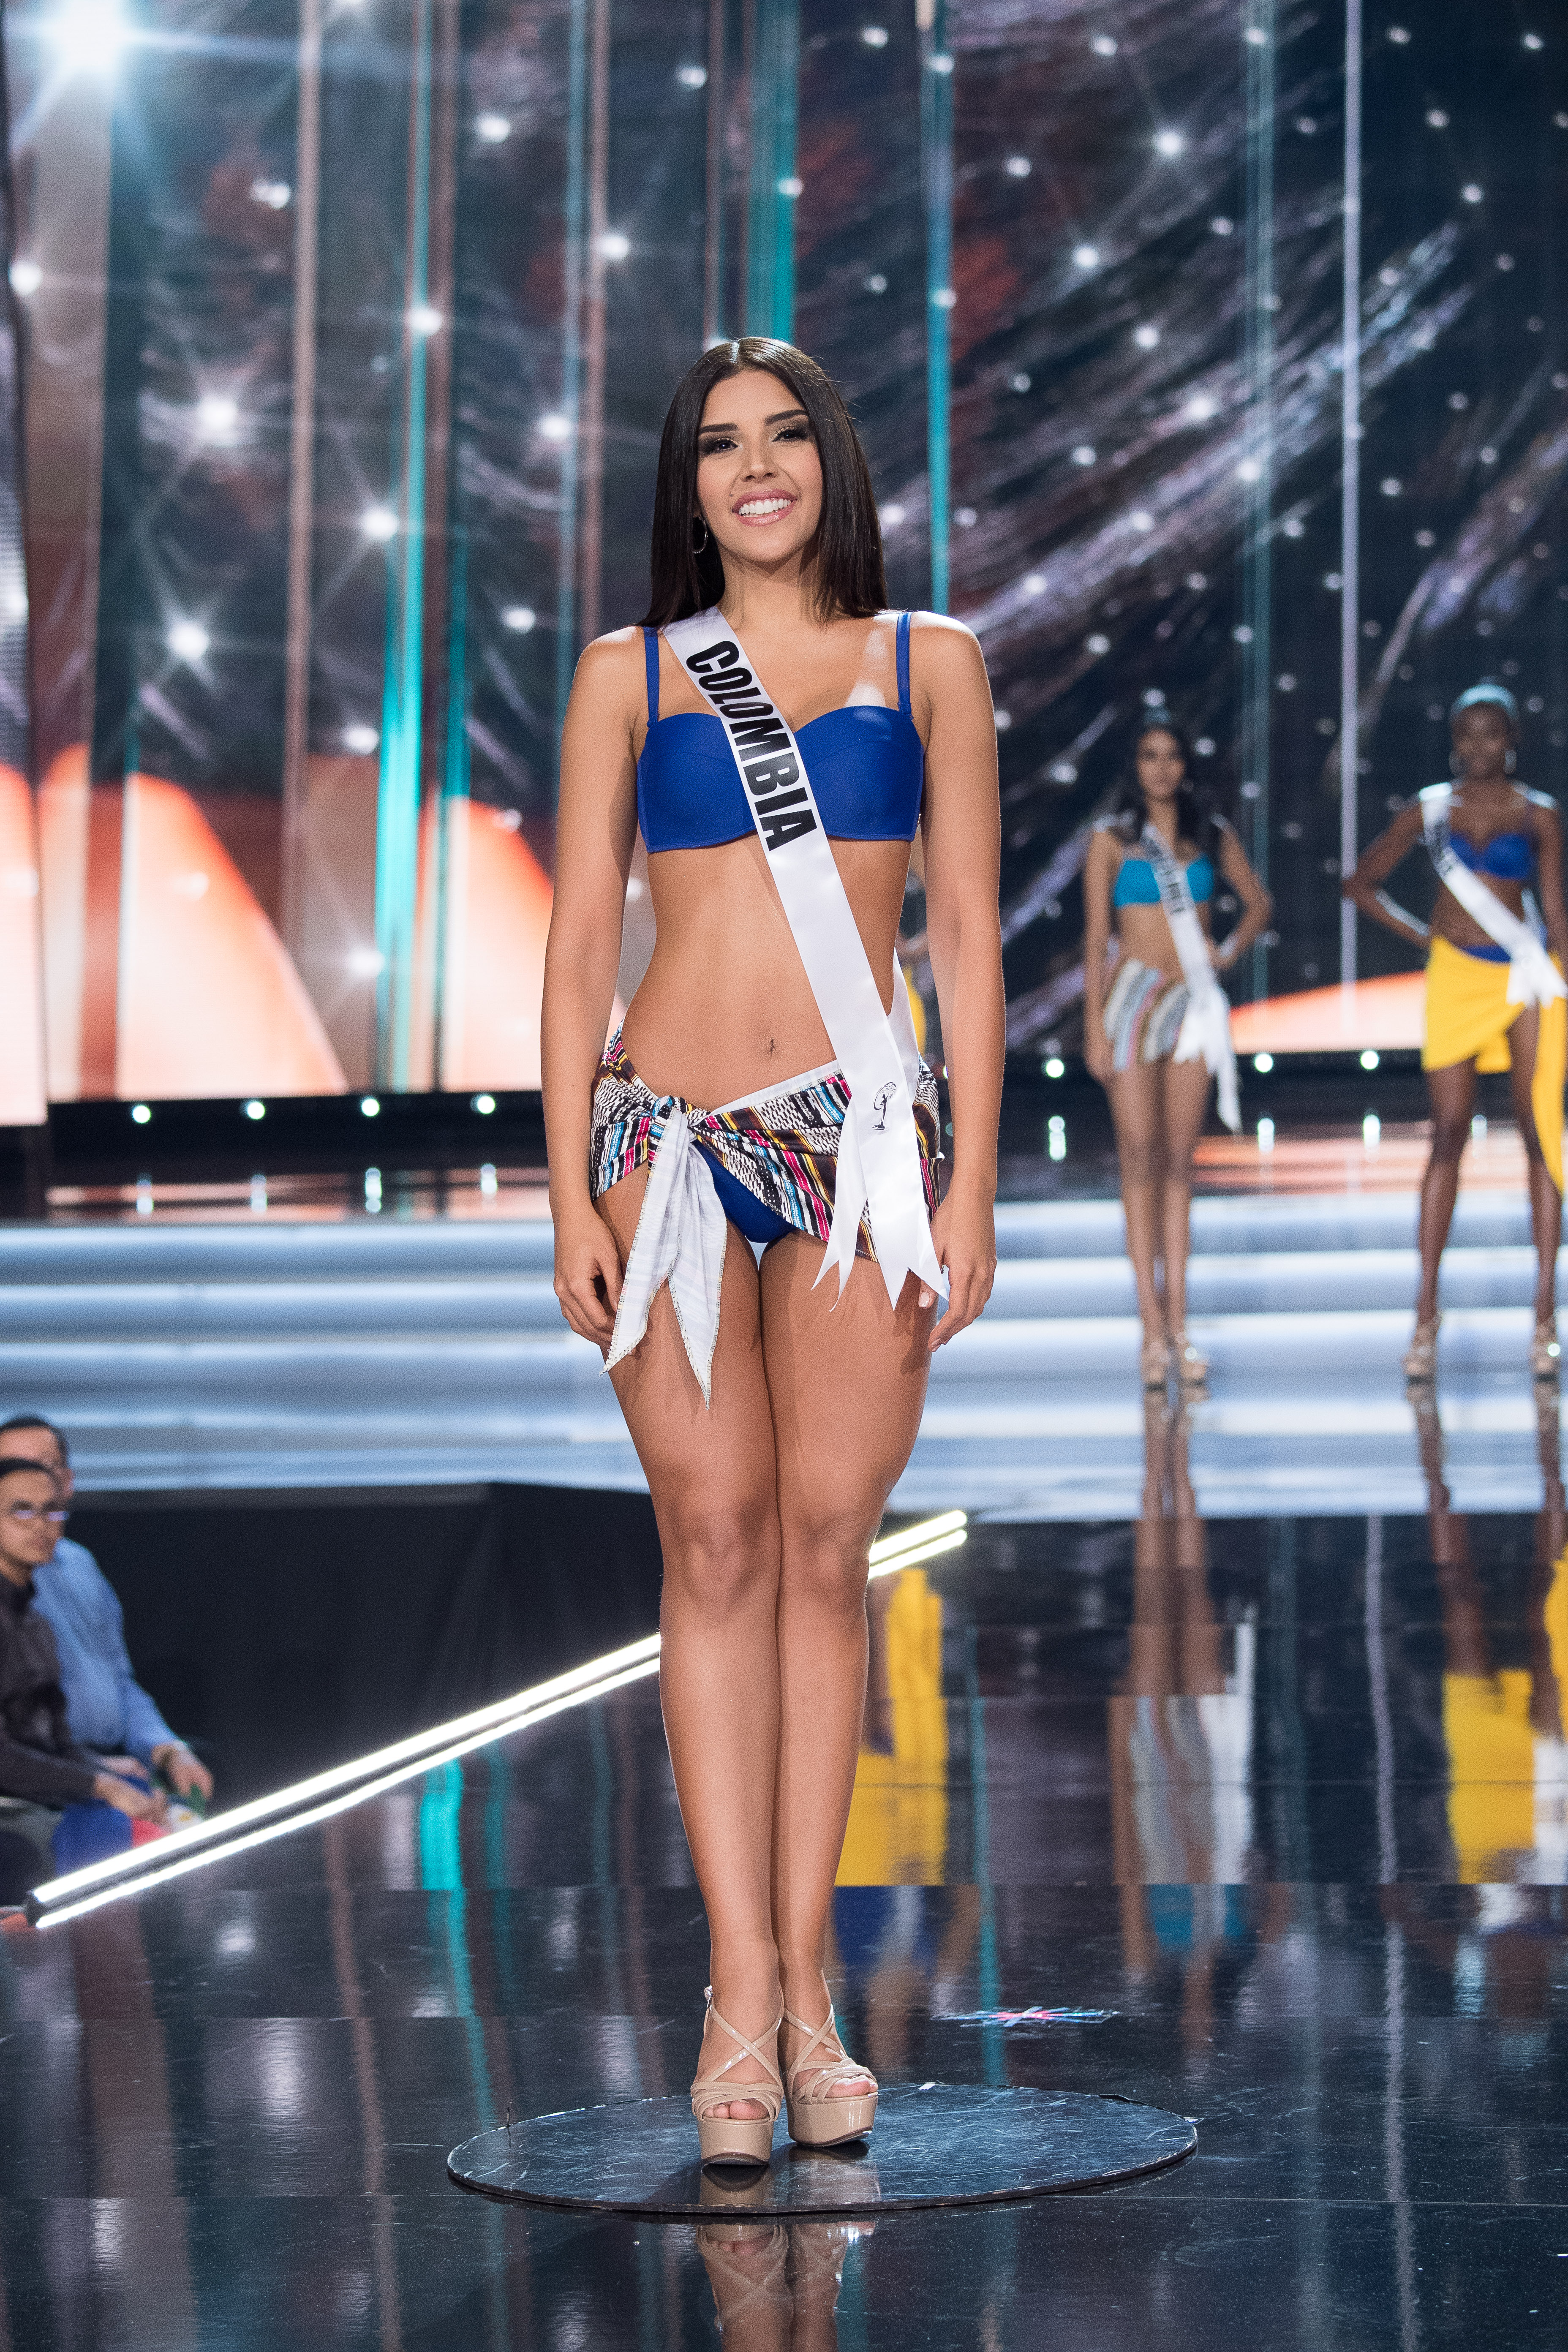 miss-usa-gay-comment-lesbian-ghetto-chicks